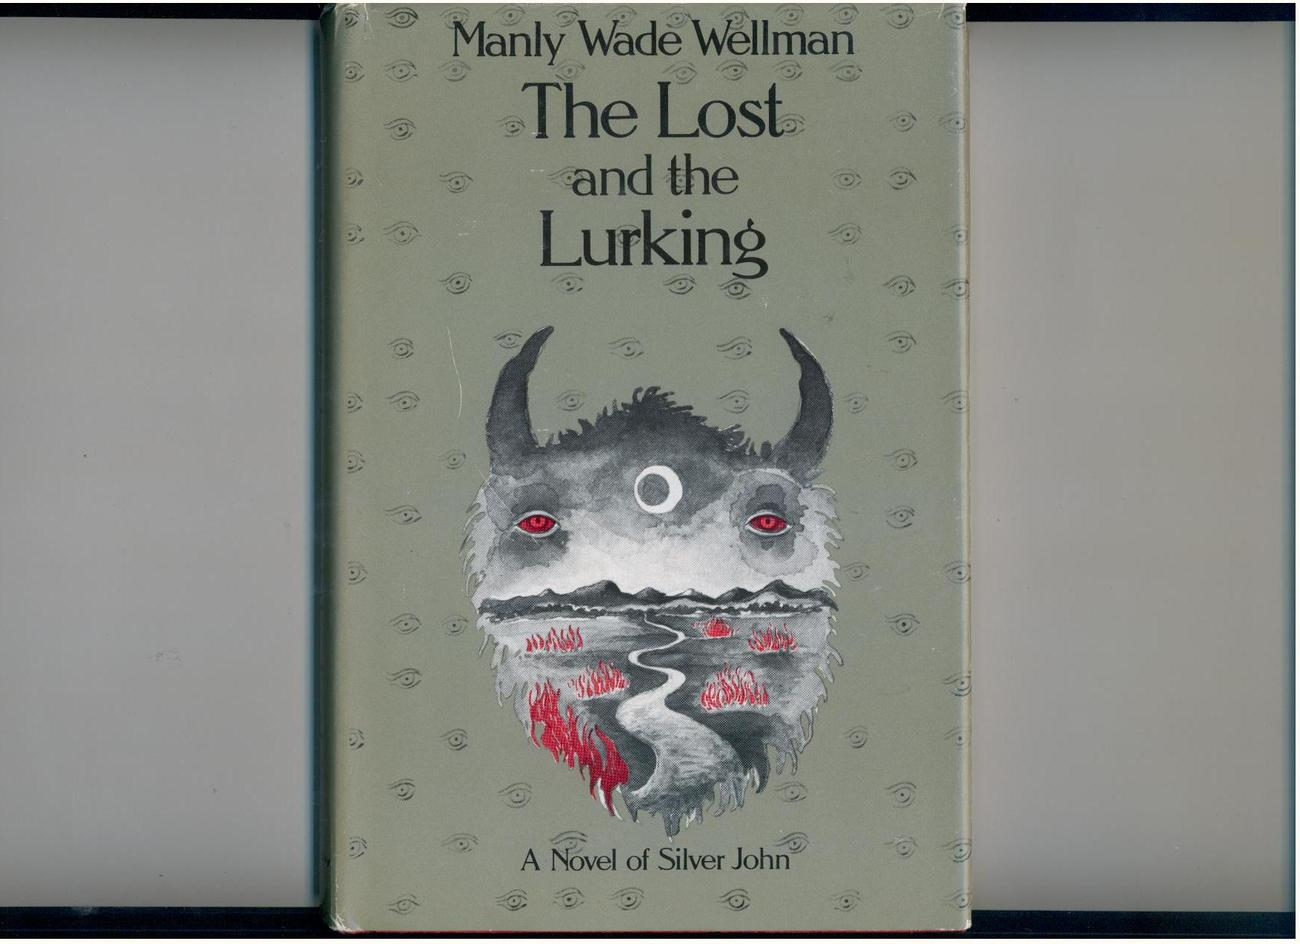 Wellman--THE LOST AND THE LURKING--1981--Silver John novel